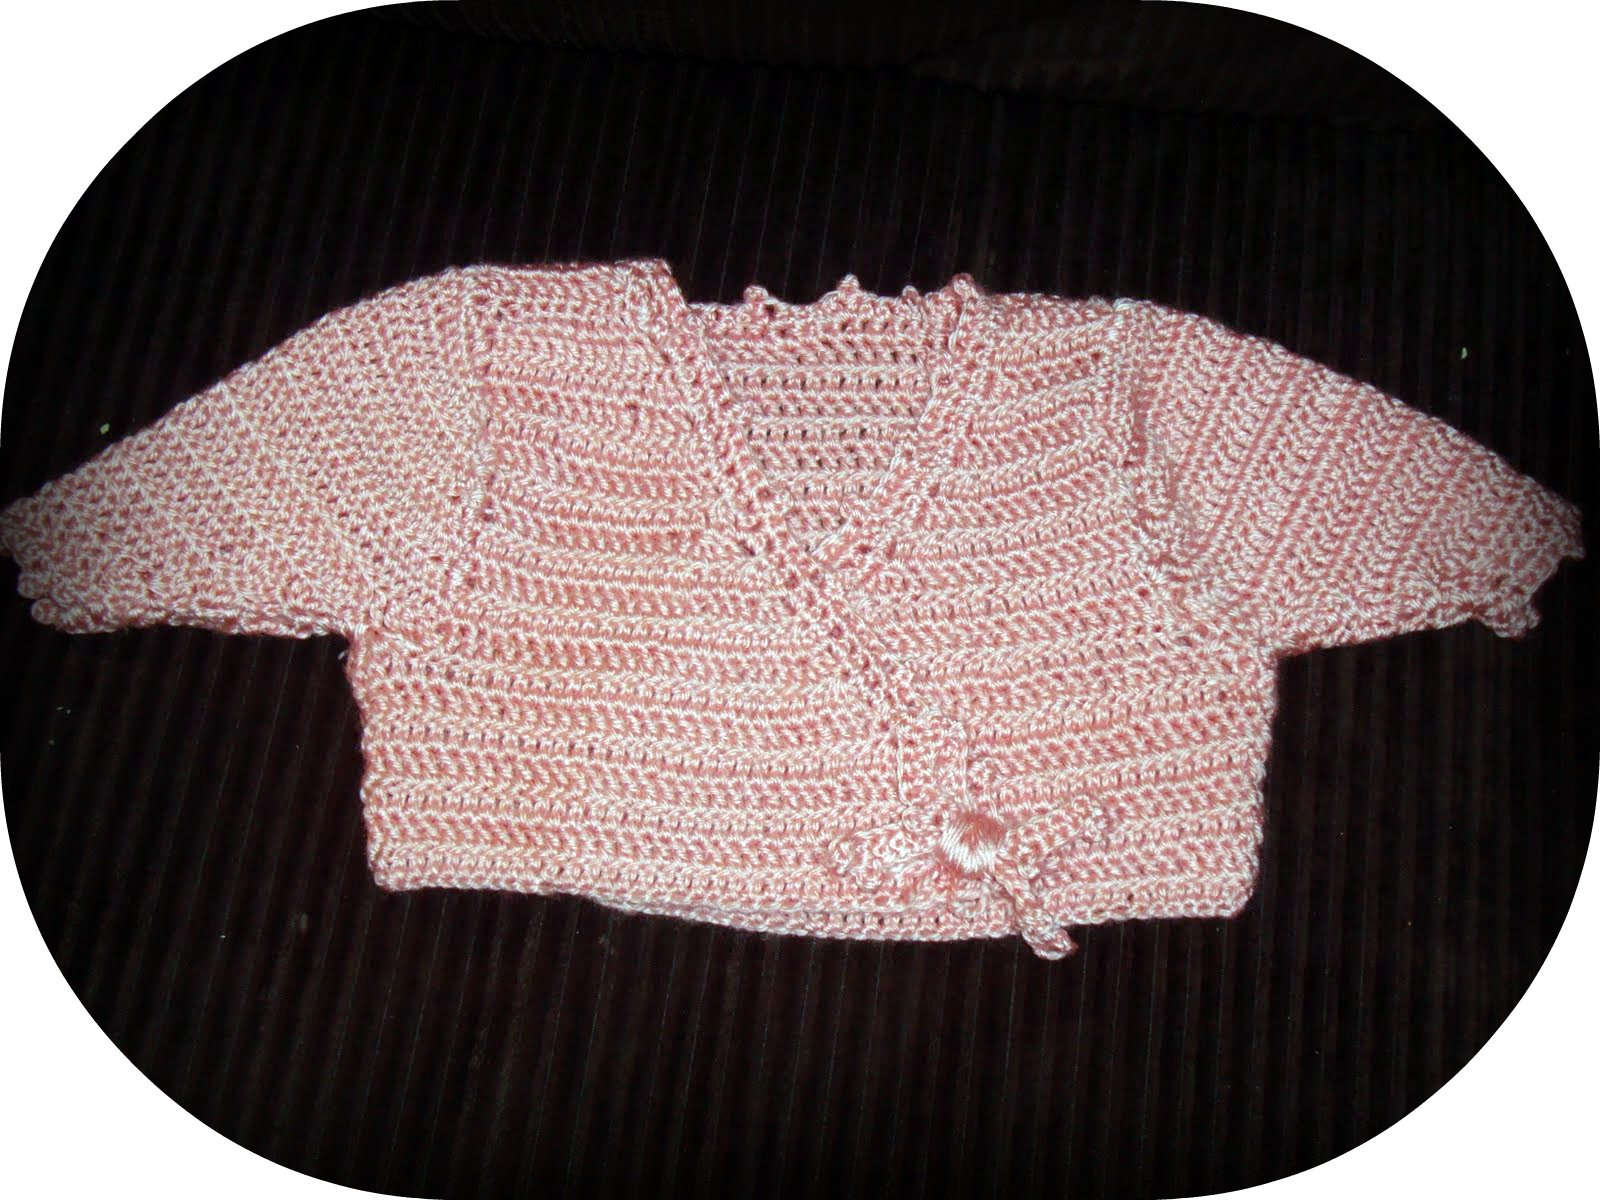 c1103f34dd5b The Recovery and Reinventment Project  Crochet Baby Wrap Sweater